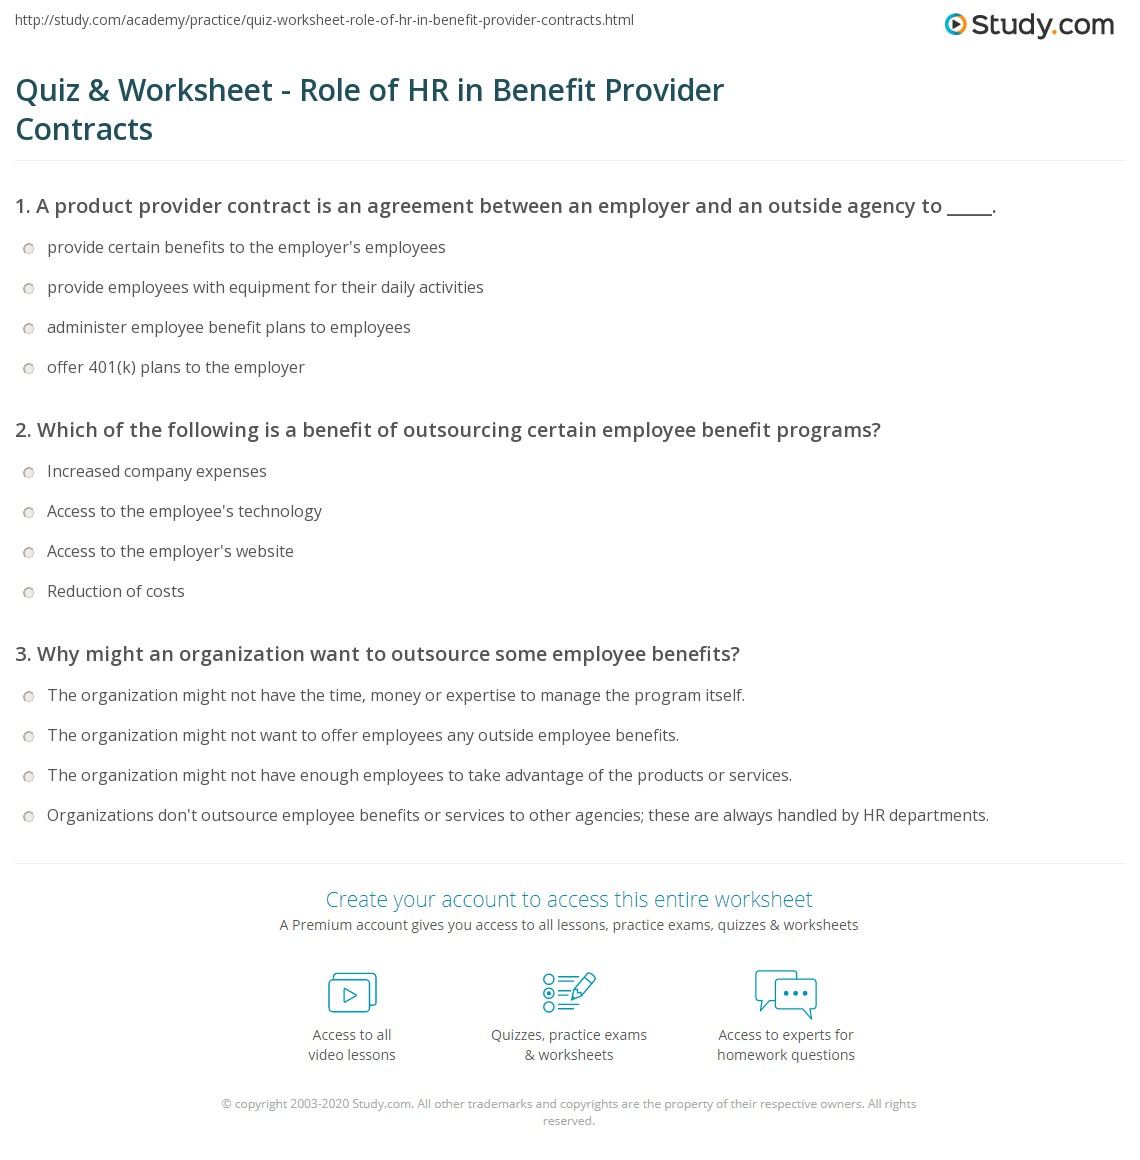 Quiz & Worksheet - Role of HR in Benefit Provider Contracts